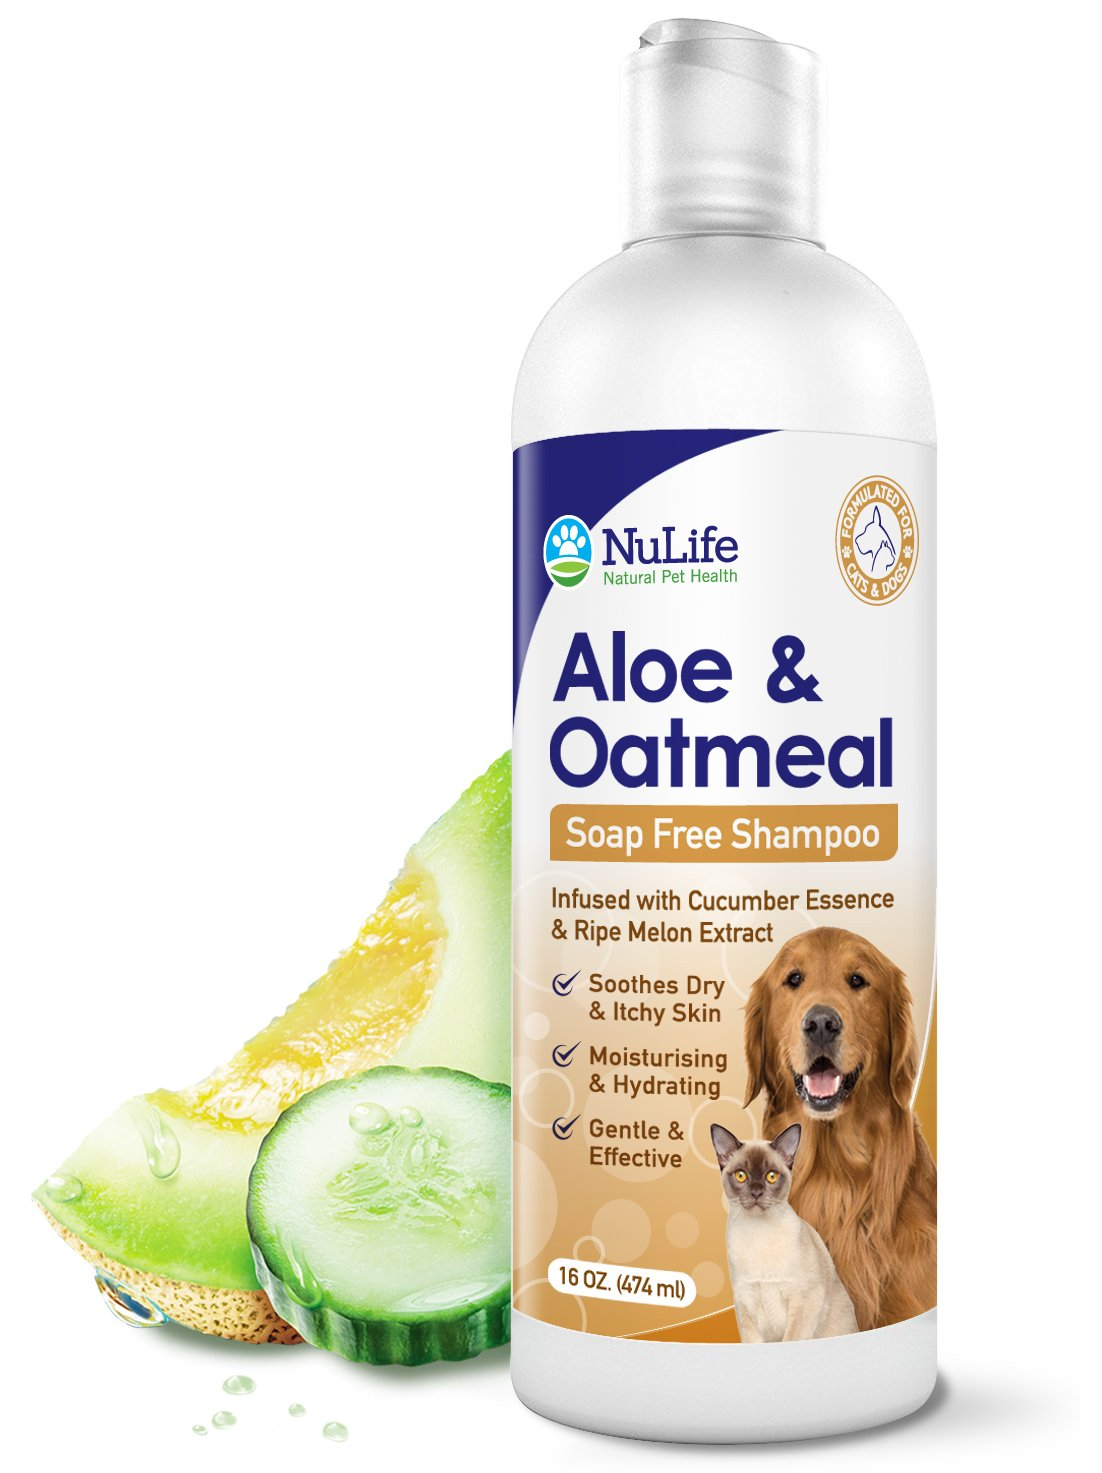 Oatmeal Shampoo For Dogs With Soothing Aloe Vera, Suitable For All Pets, With Cucumber Essence and Ripe Melon Extract, Hypoallergenic, Soap-Free Formula Provides Relief From Dry, Itchy Skin, 16 Oz